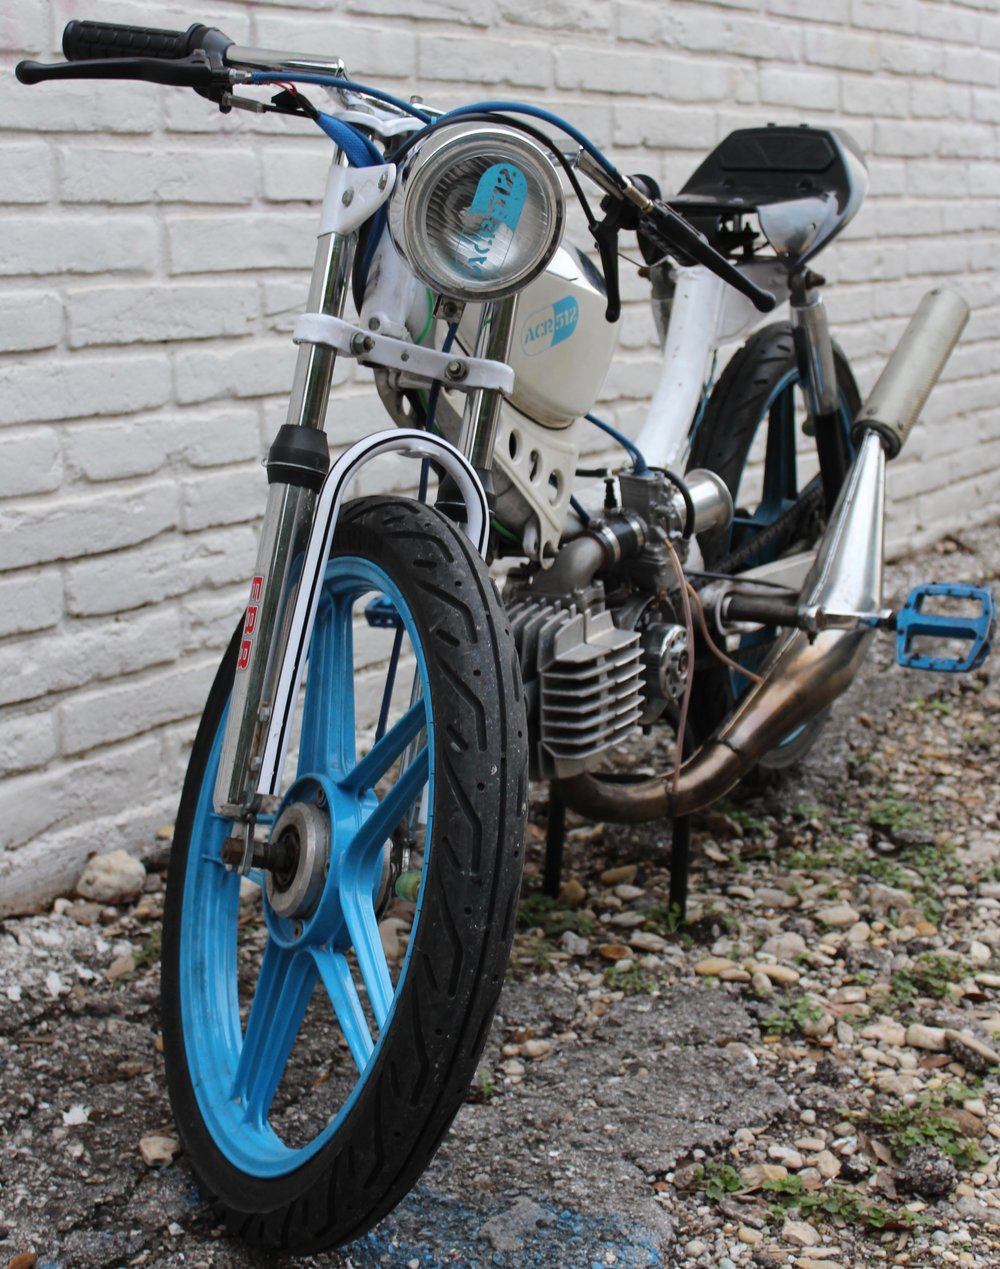 JC Penneys Pinto Custom Race Moped